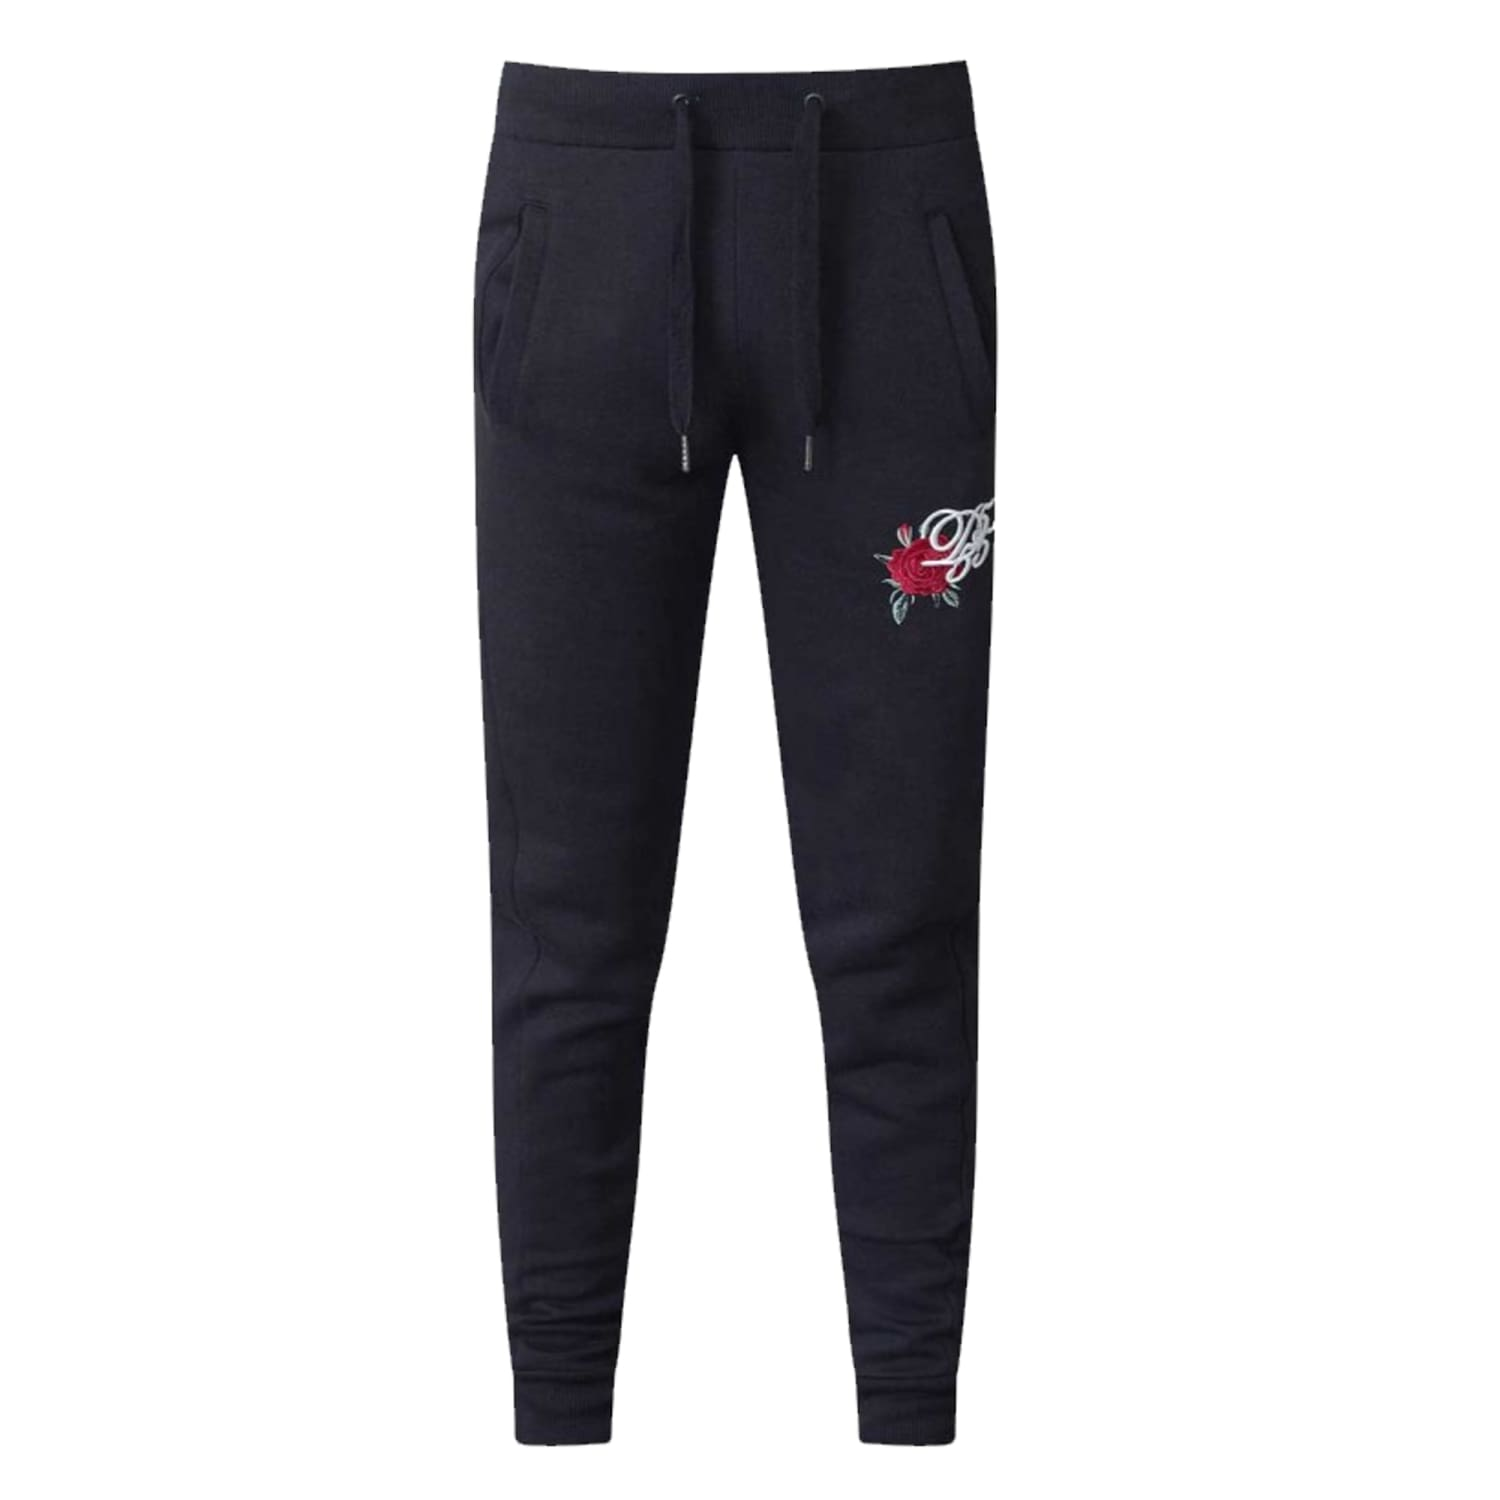 D555 Joggers - KS14125 - Matt - Black 1